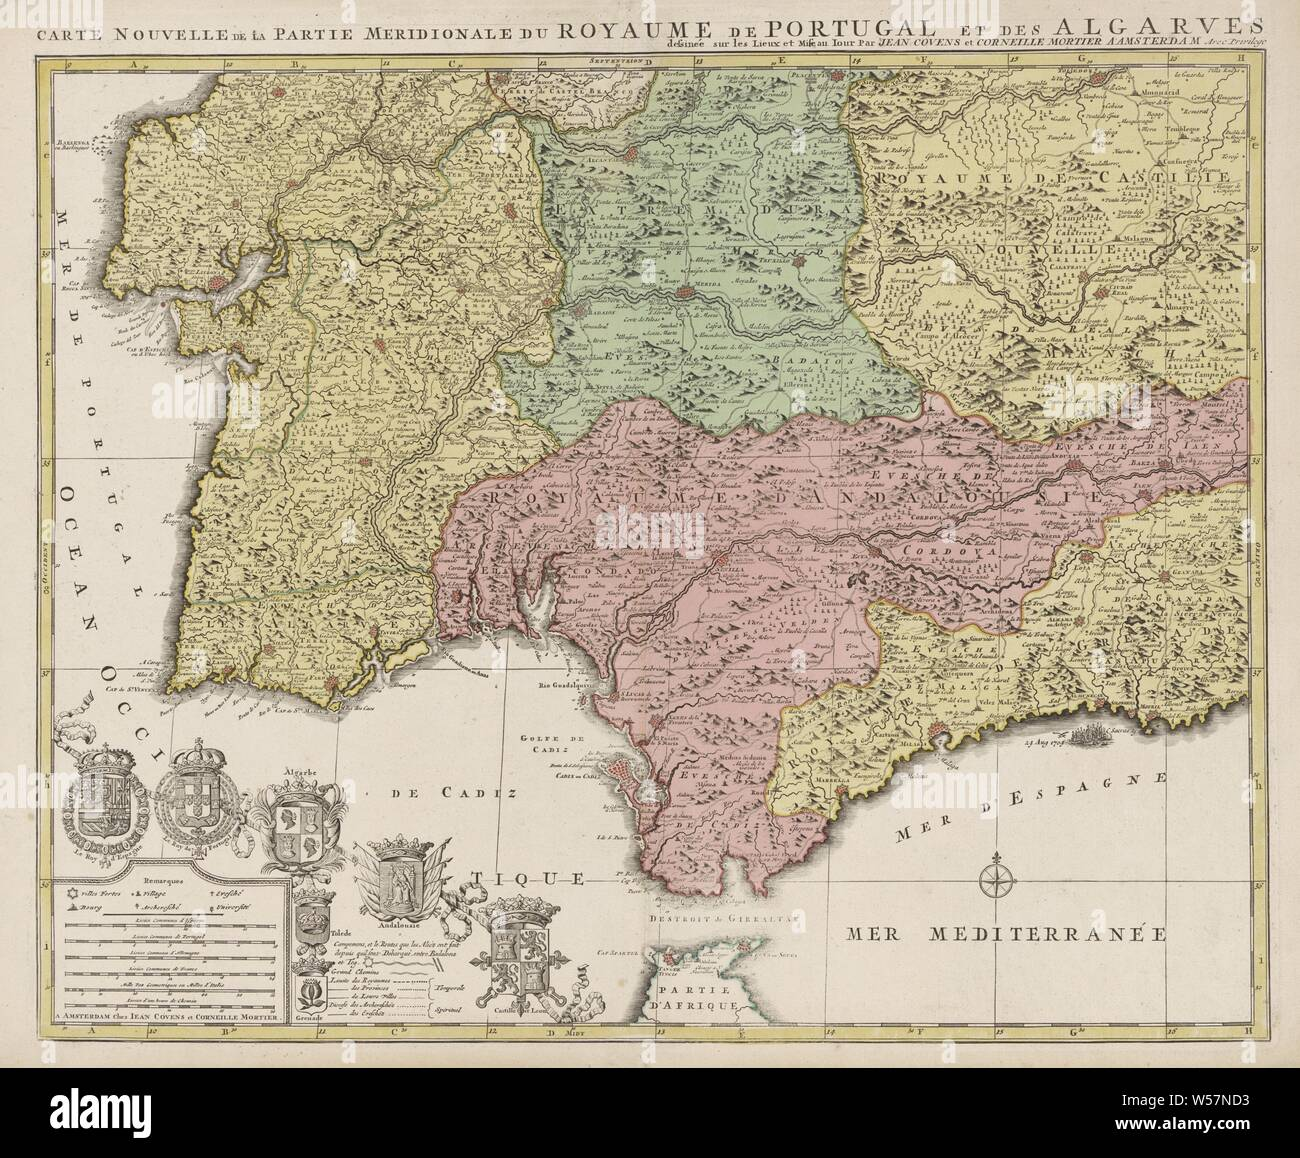 South Coast Of Spain Map.Castile Map Stock Photos Castile Map Stock Images Alamy